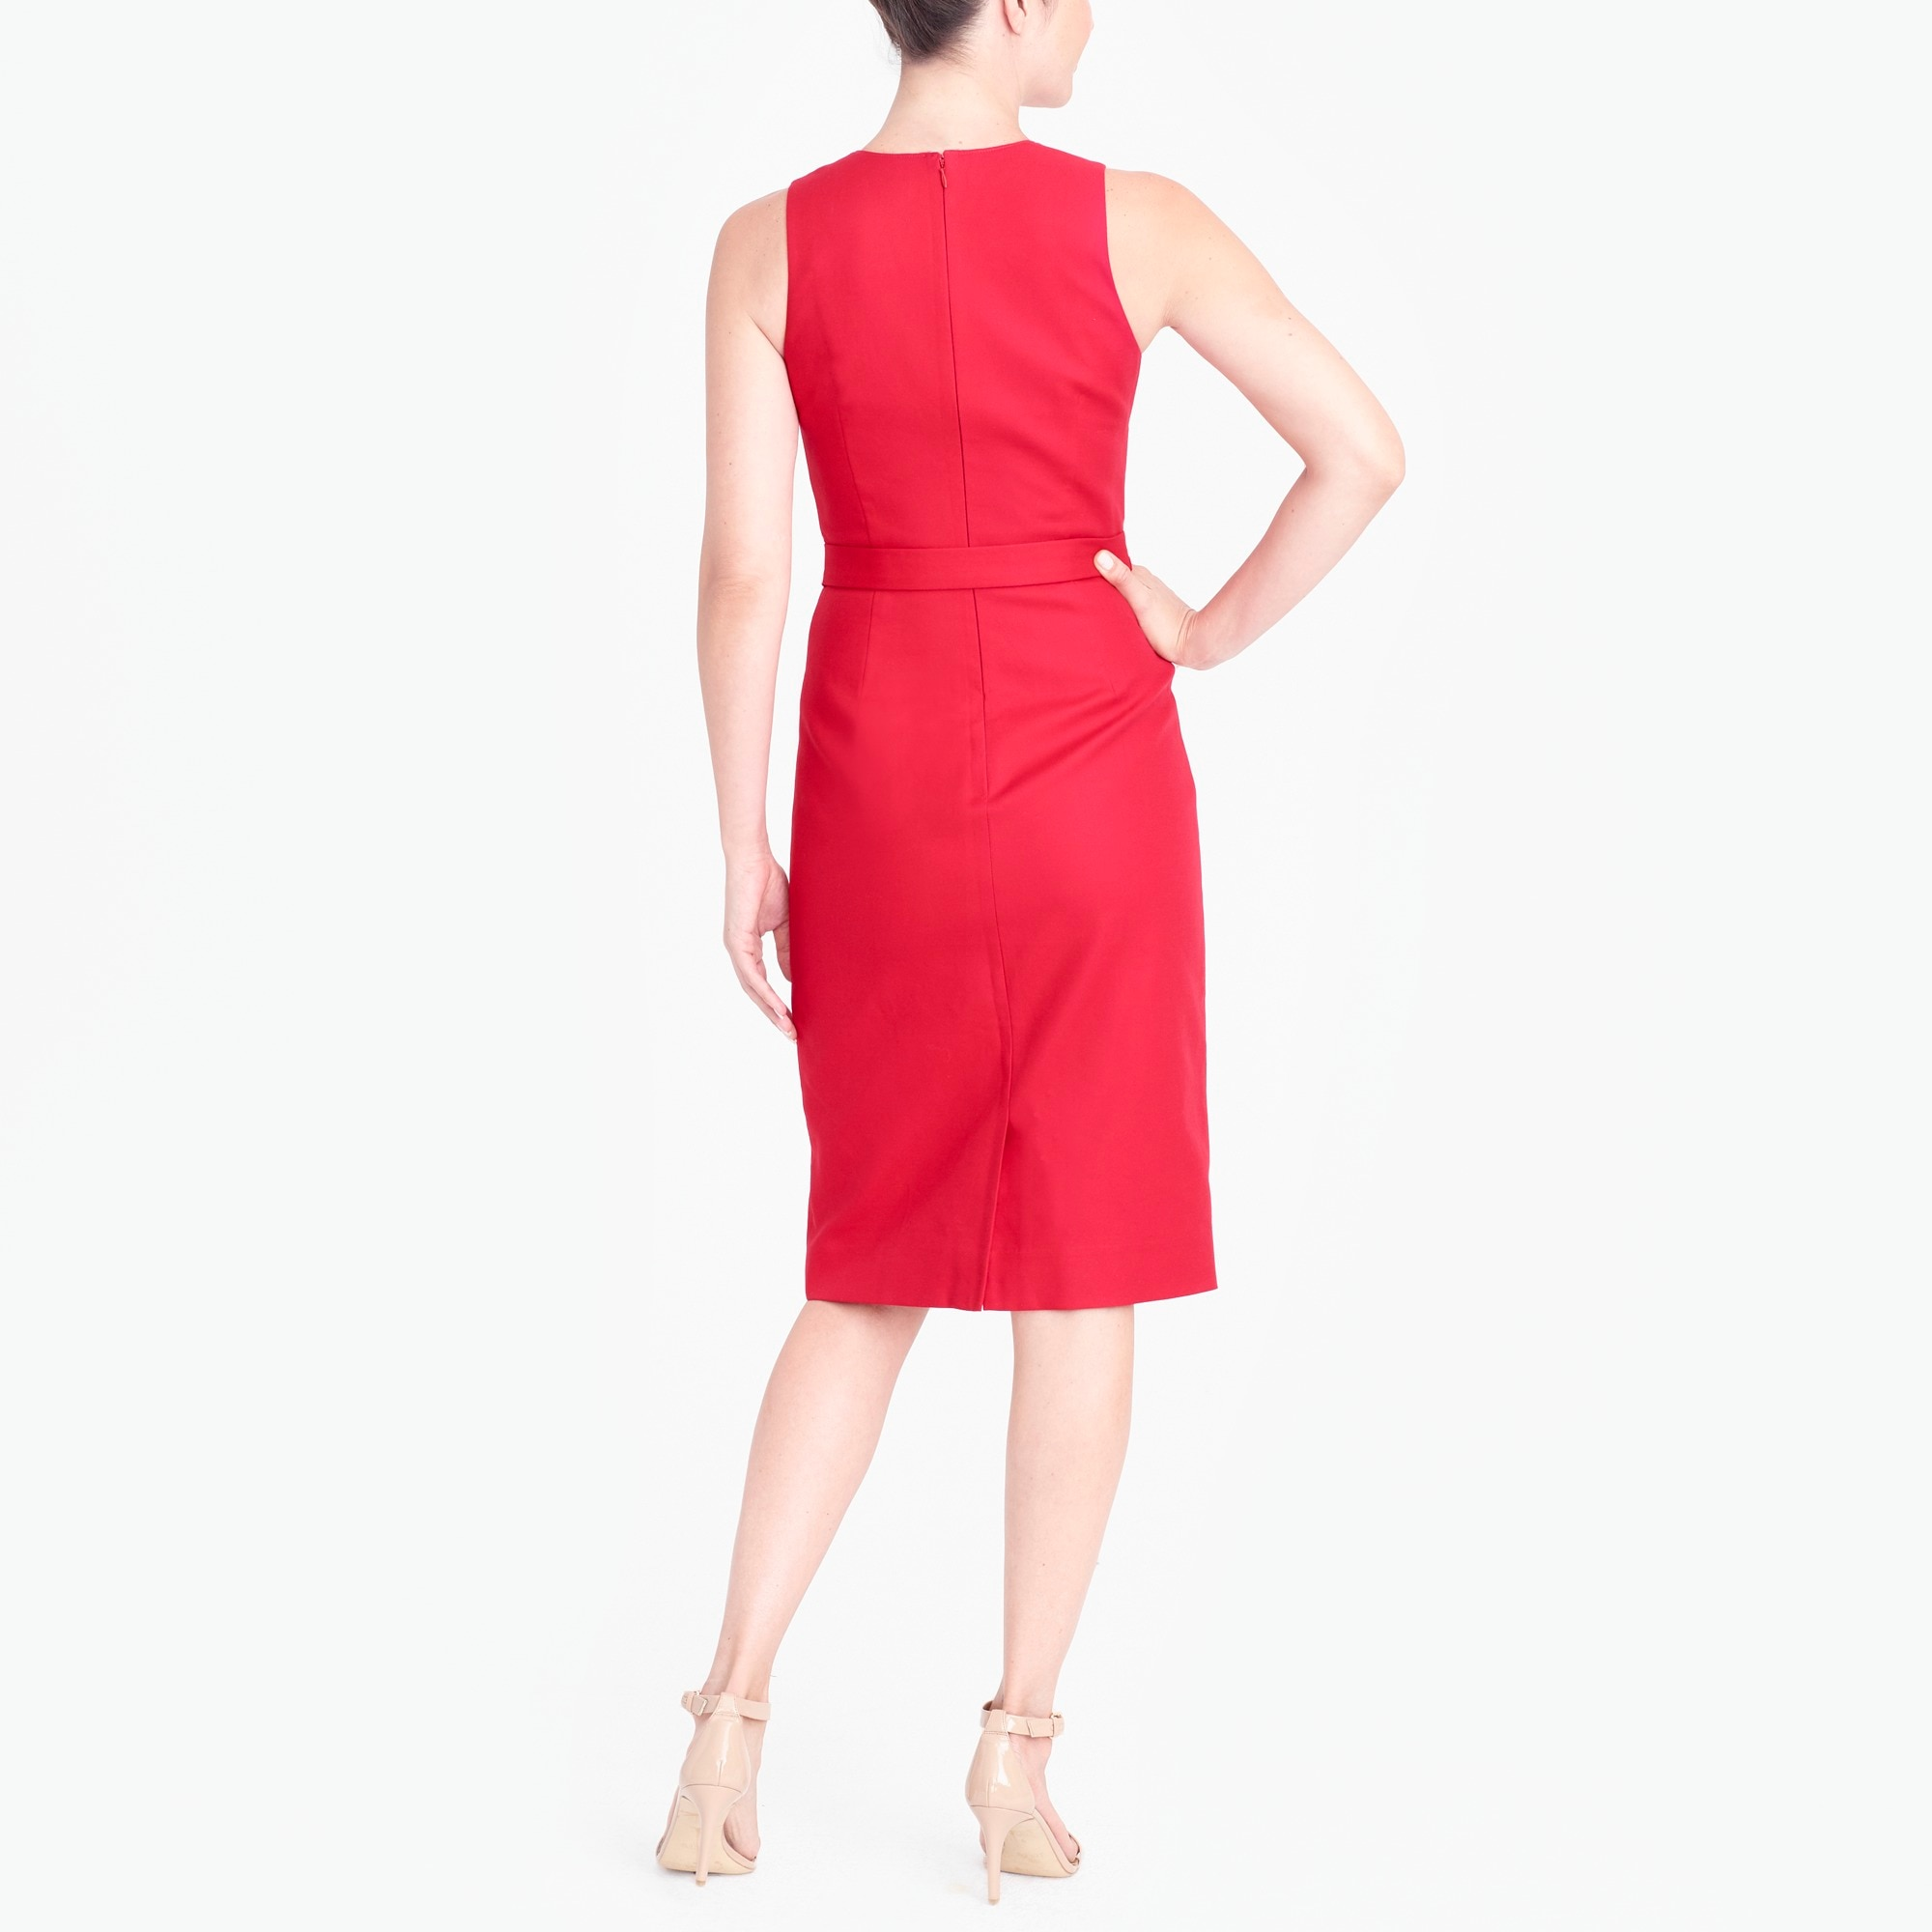 Image 2 for V-neck fitted dress with belt